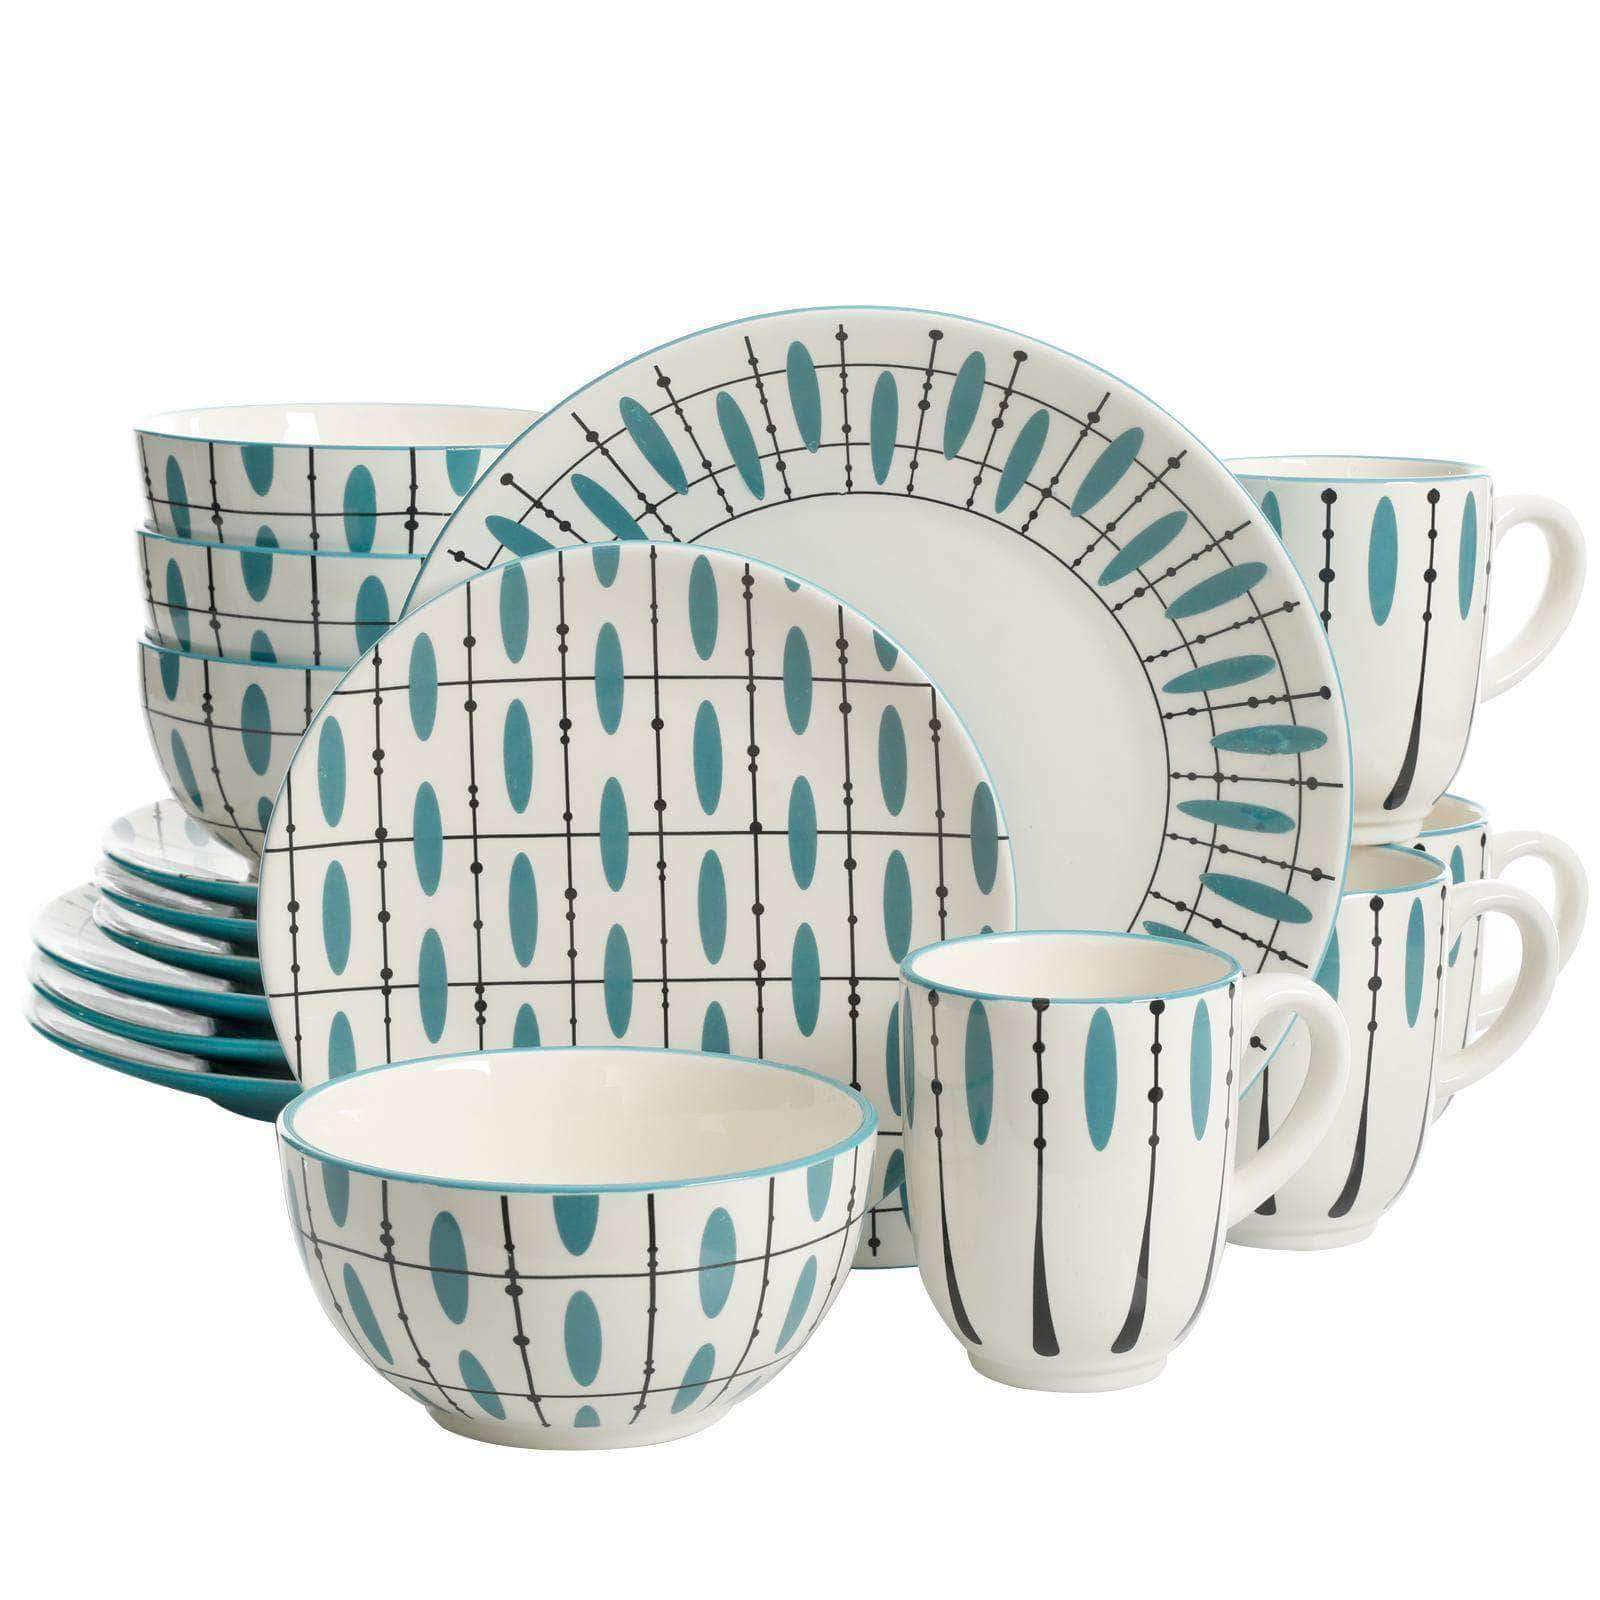 LaurieGates Dinnerware Sets Laurie Gates Luminescent 16 Piece Dinnerware Set, Hand Painted